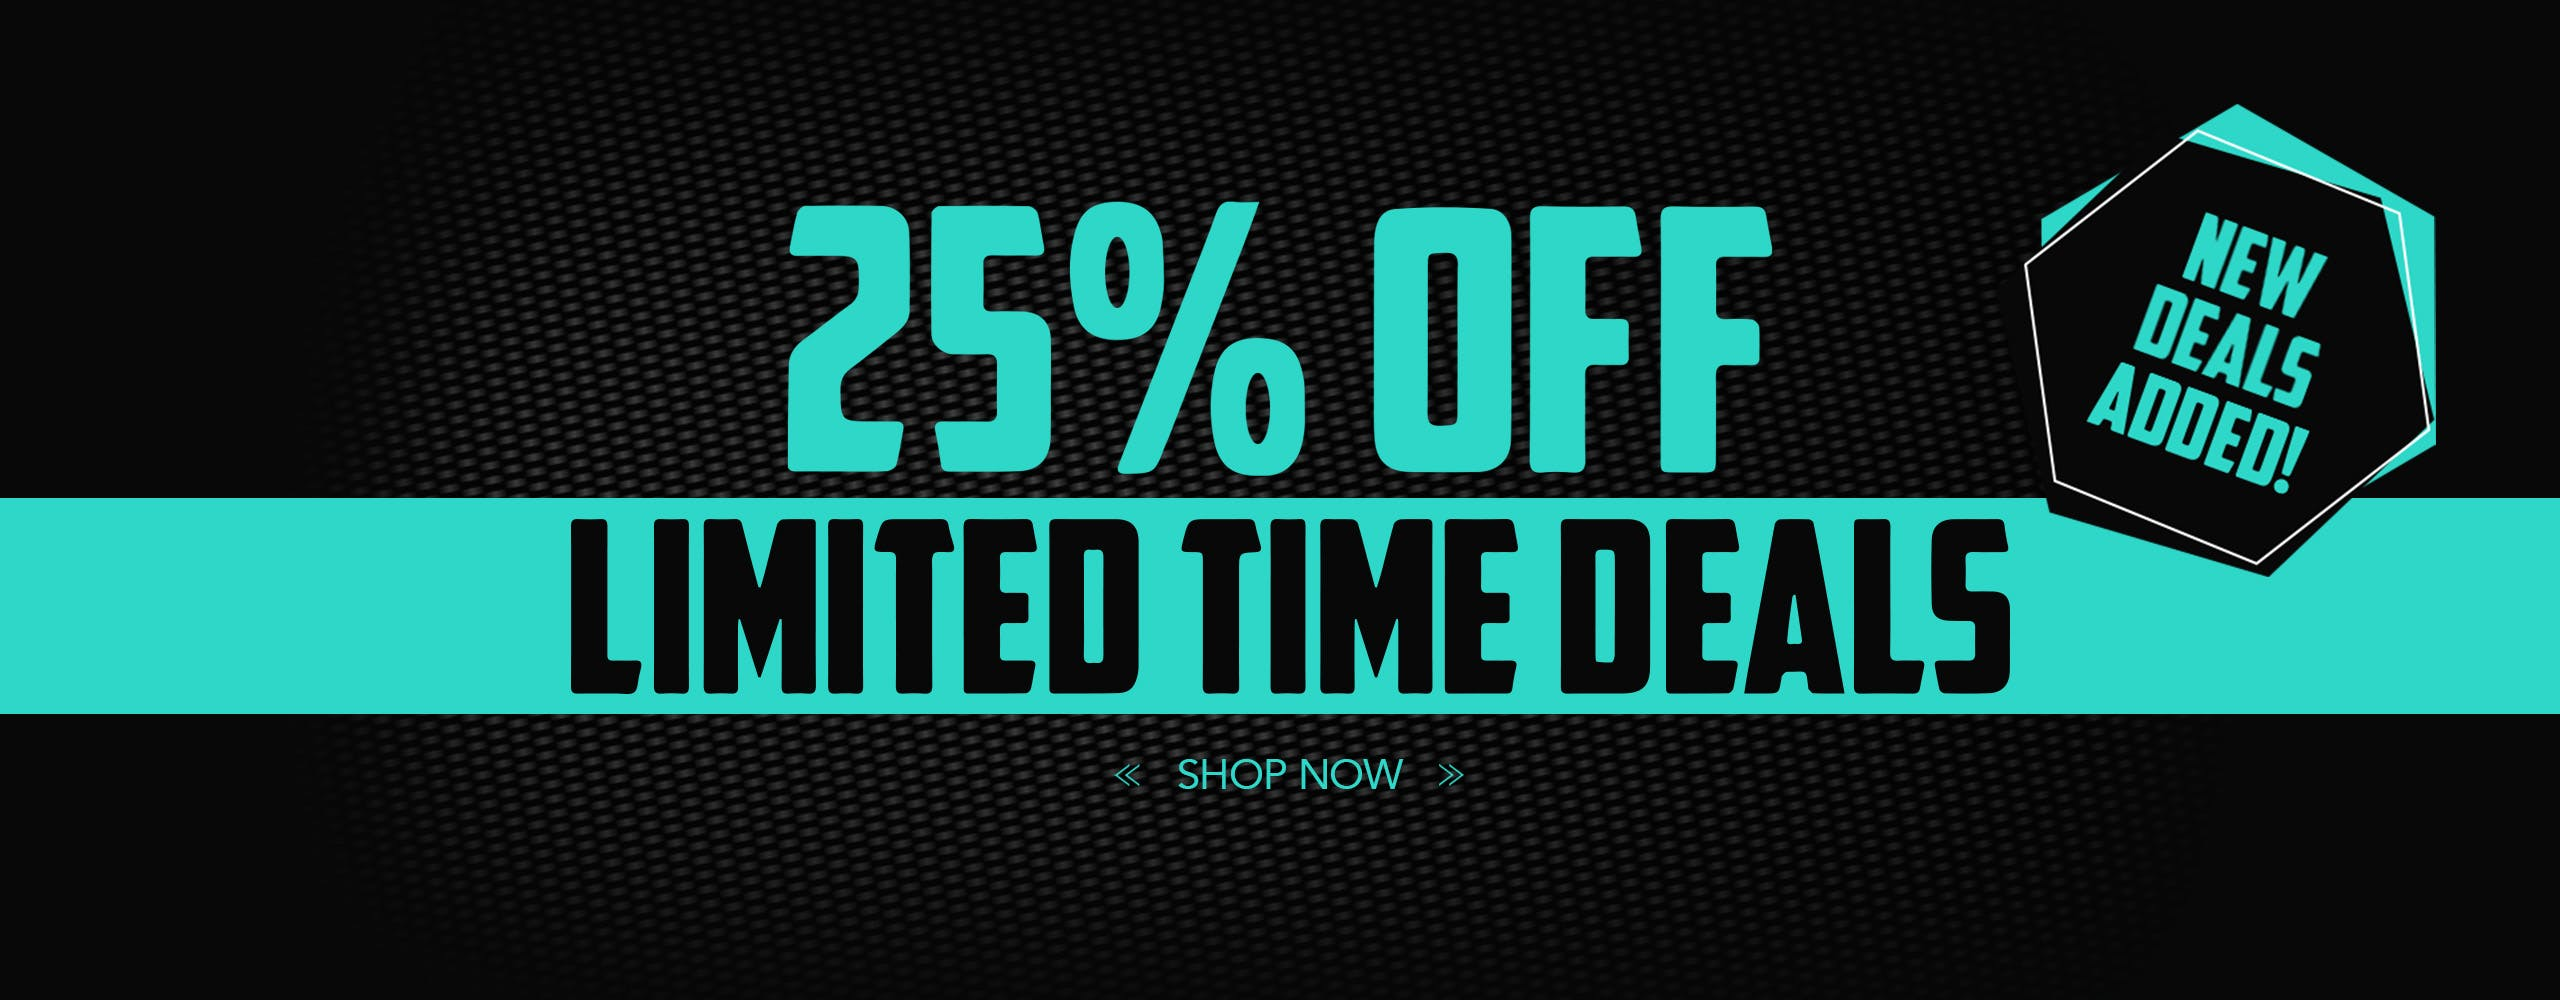 Limited time offers now on!